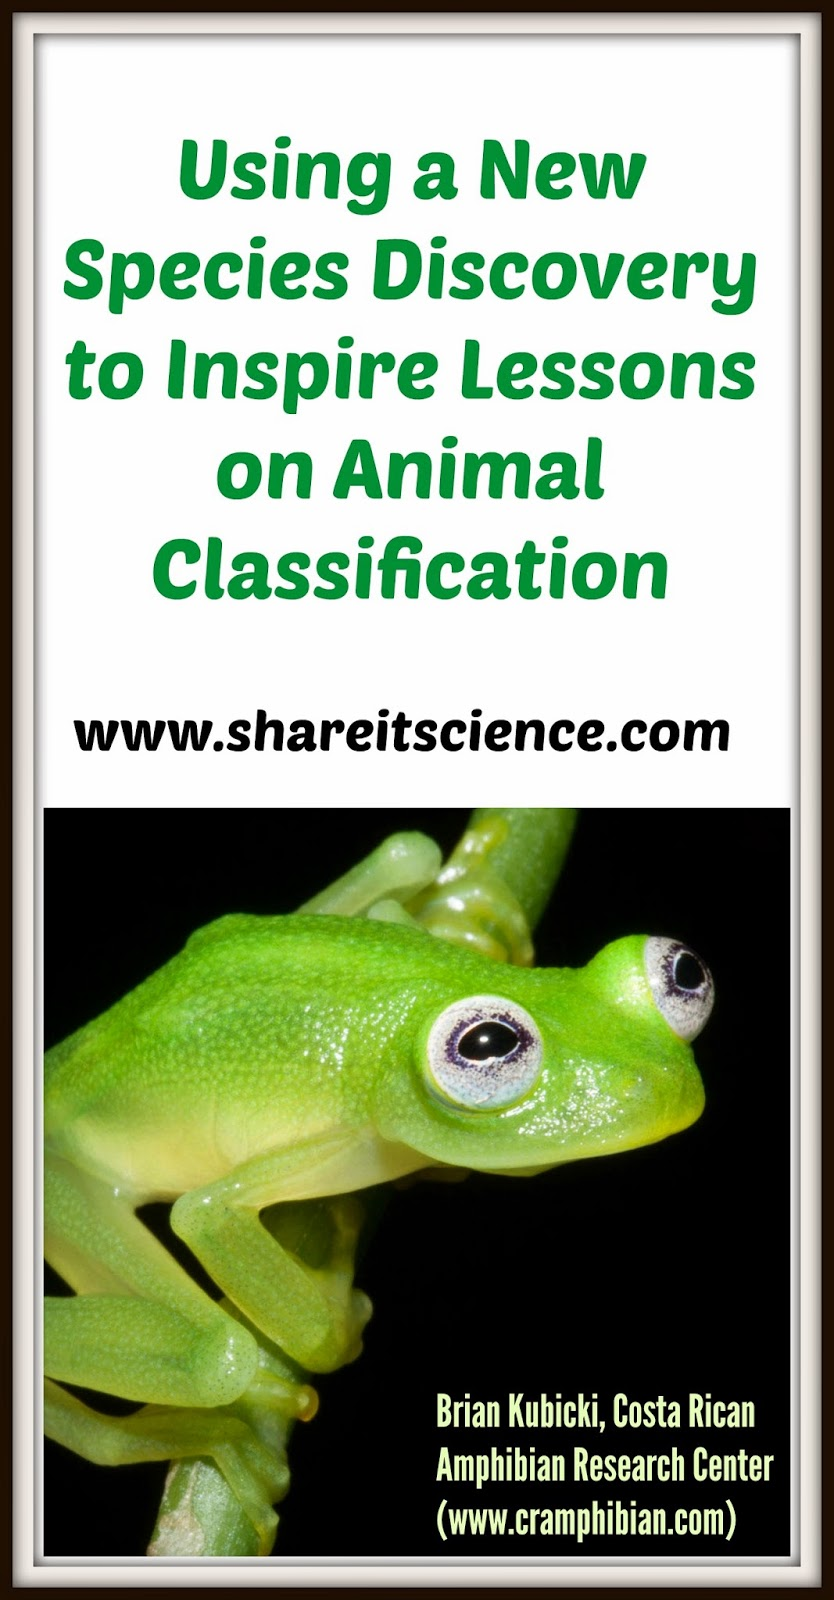 Share It Science RealLife Kermit Inspires Animal - Real life kermit the frog discovered in costa rica